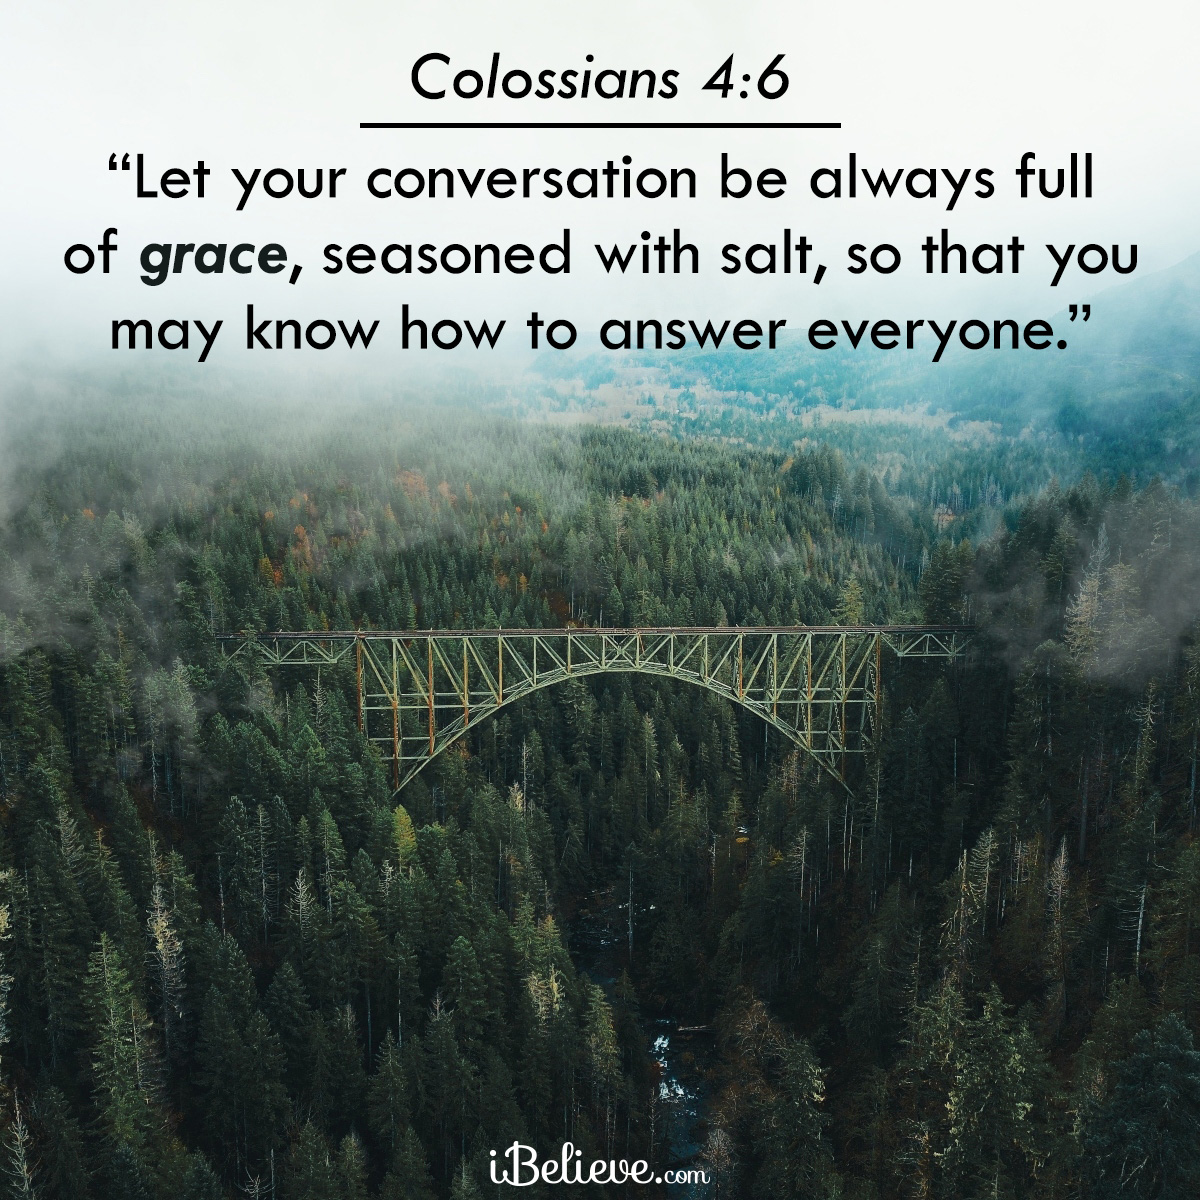 Colossians 4:6, inspirational image